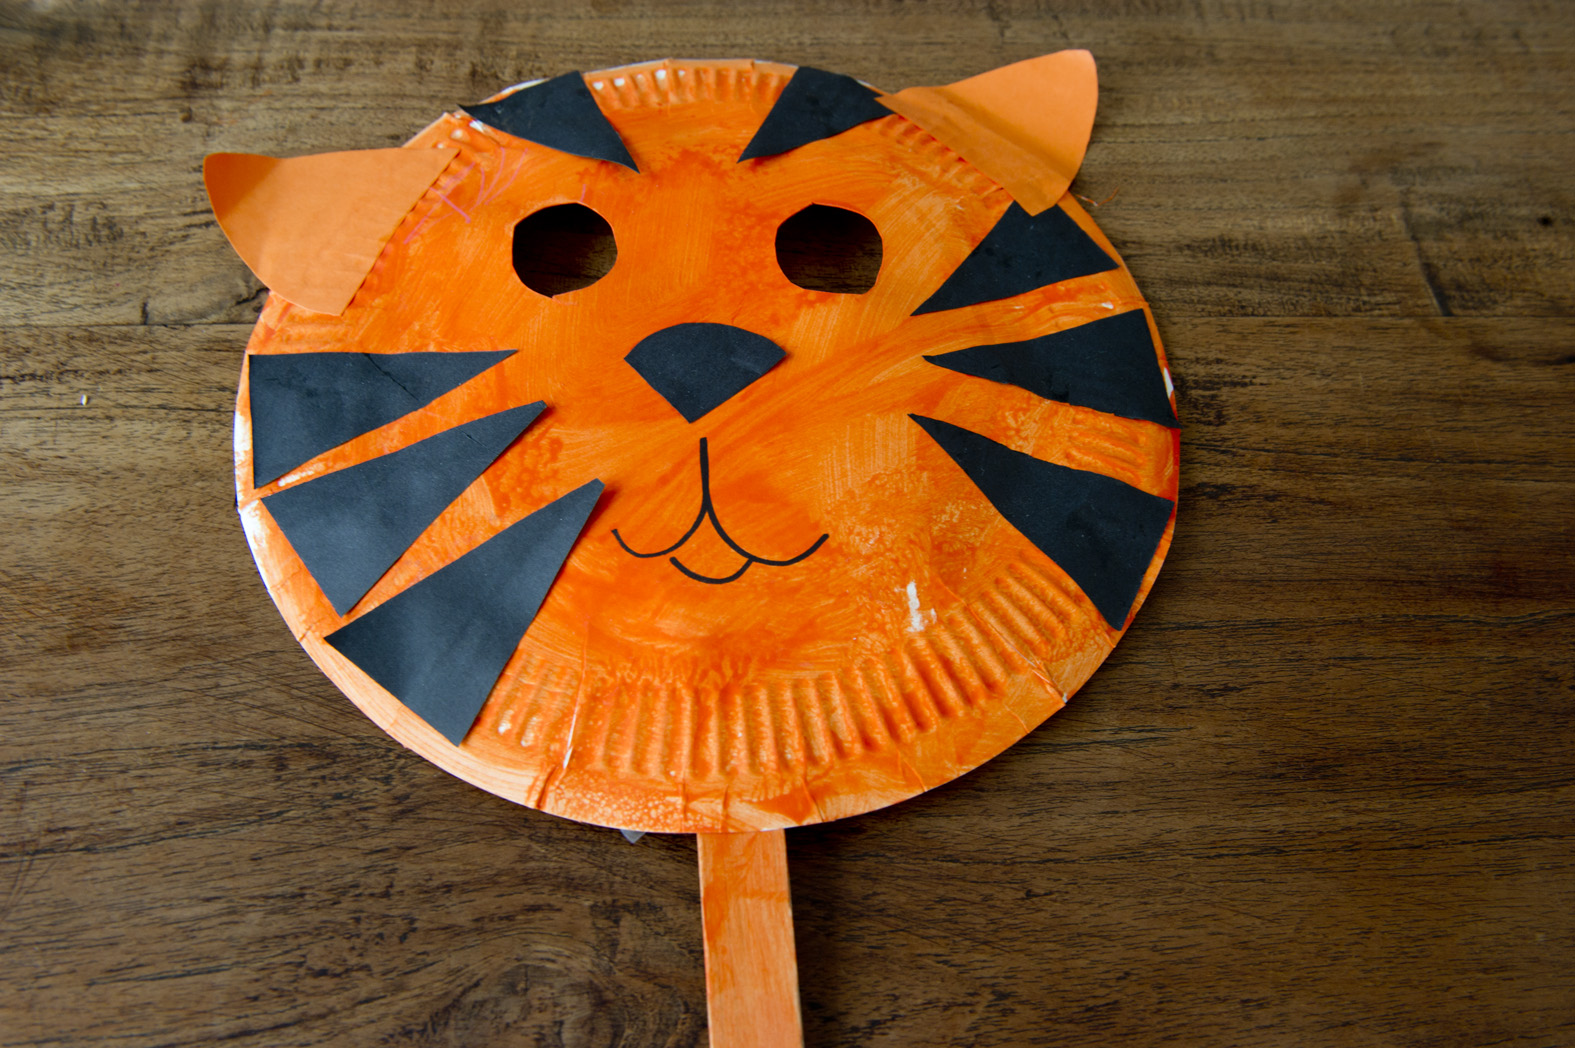 White paper plates. Penknife Orange paint \u0026 paint brushes. Craft sticks or ice cream sticks. Scissors One sheet of black construction paper & Craft for Kids: Tiger Mask | The Little Singapore Book Companion